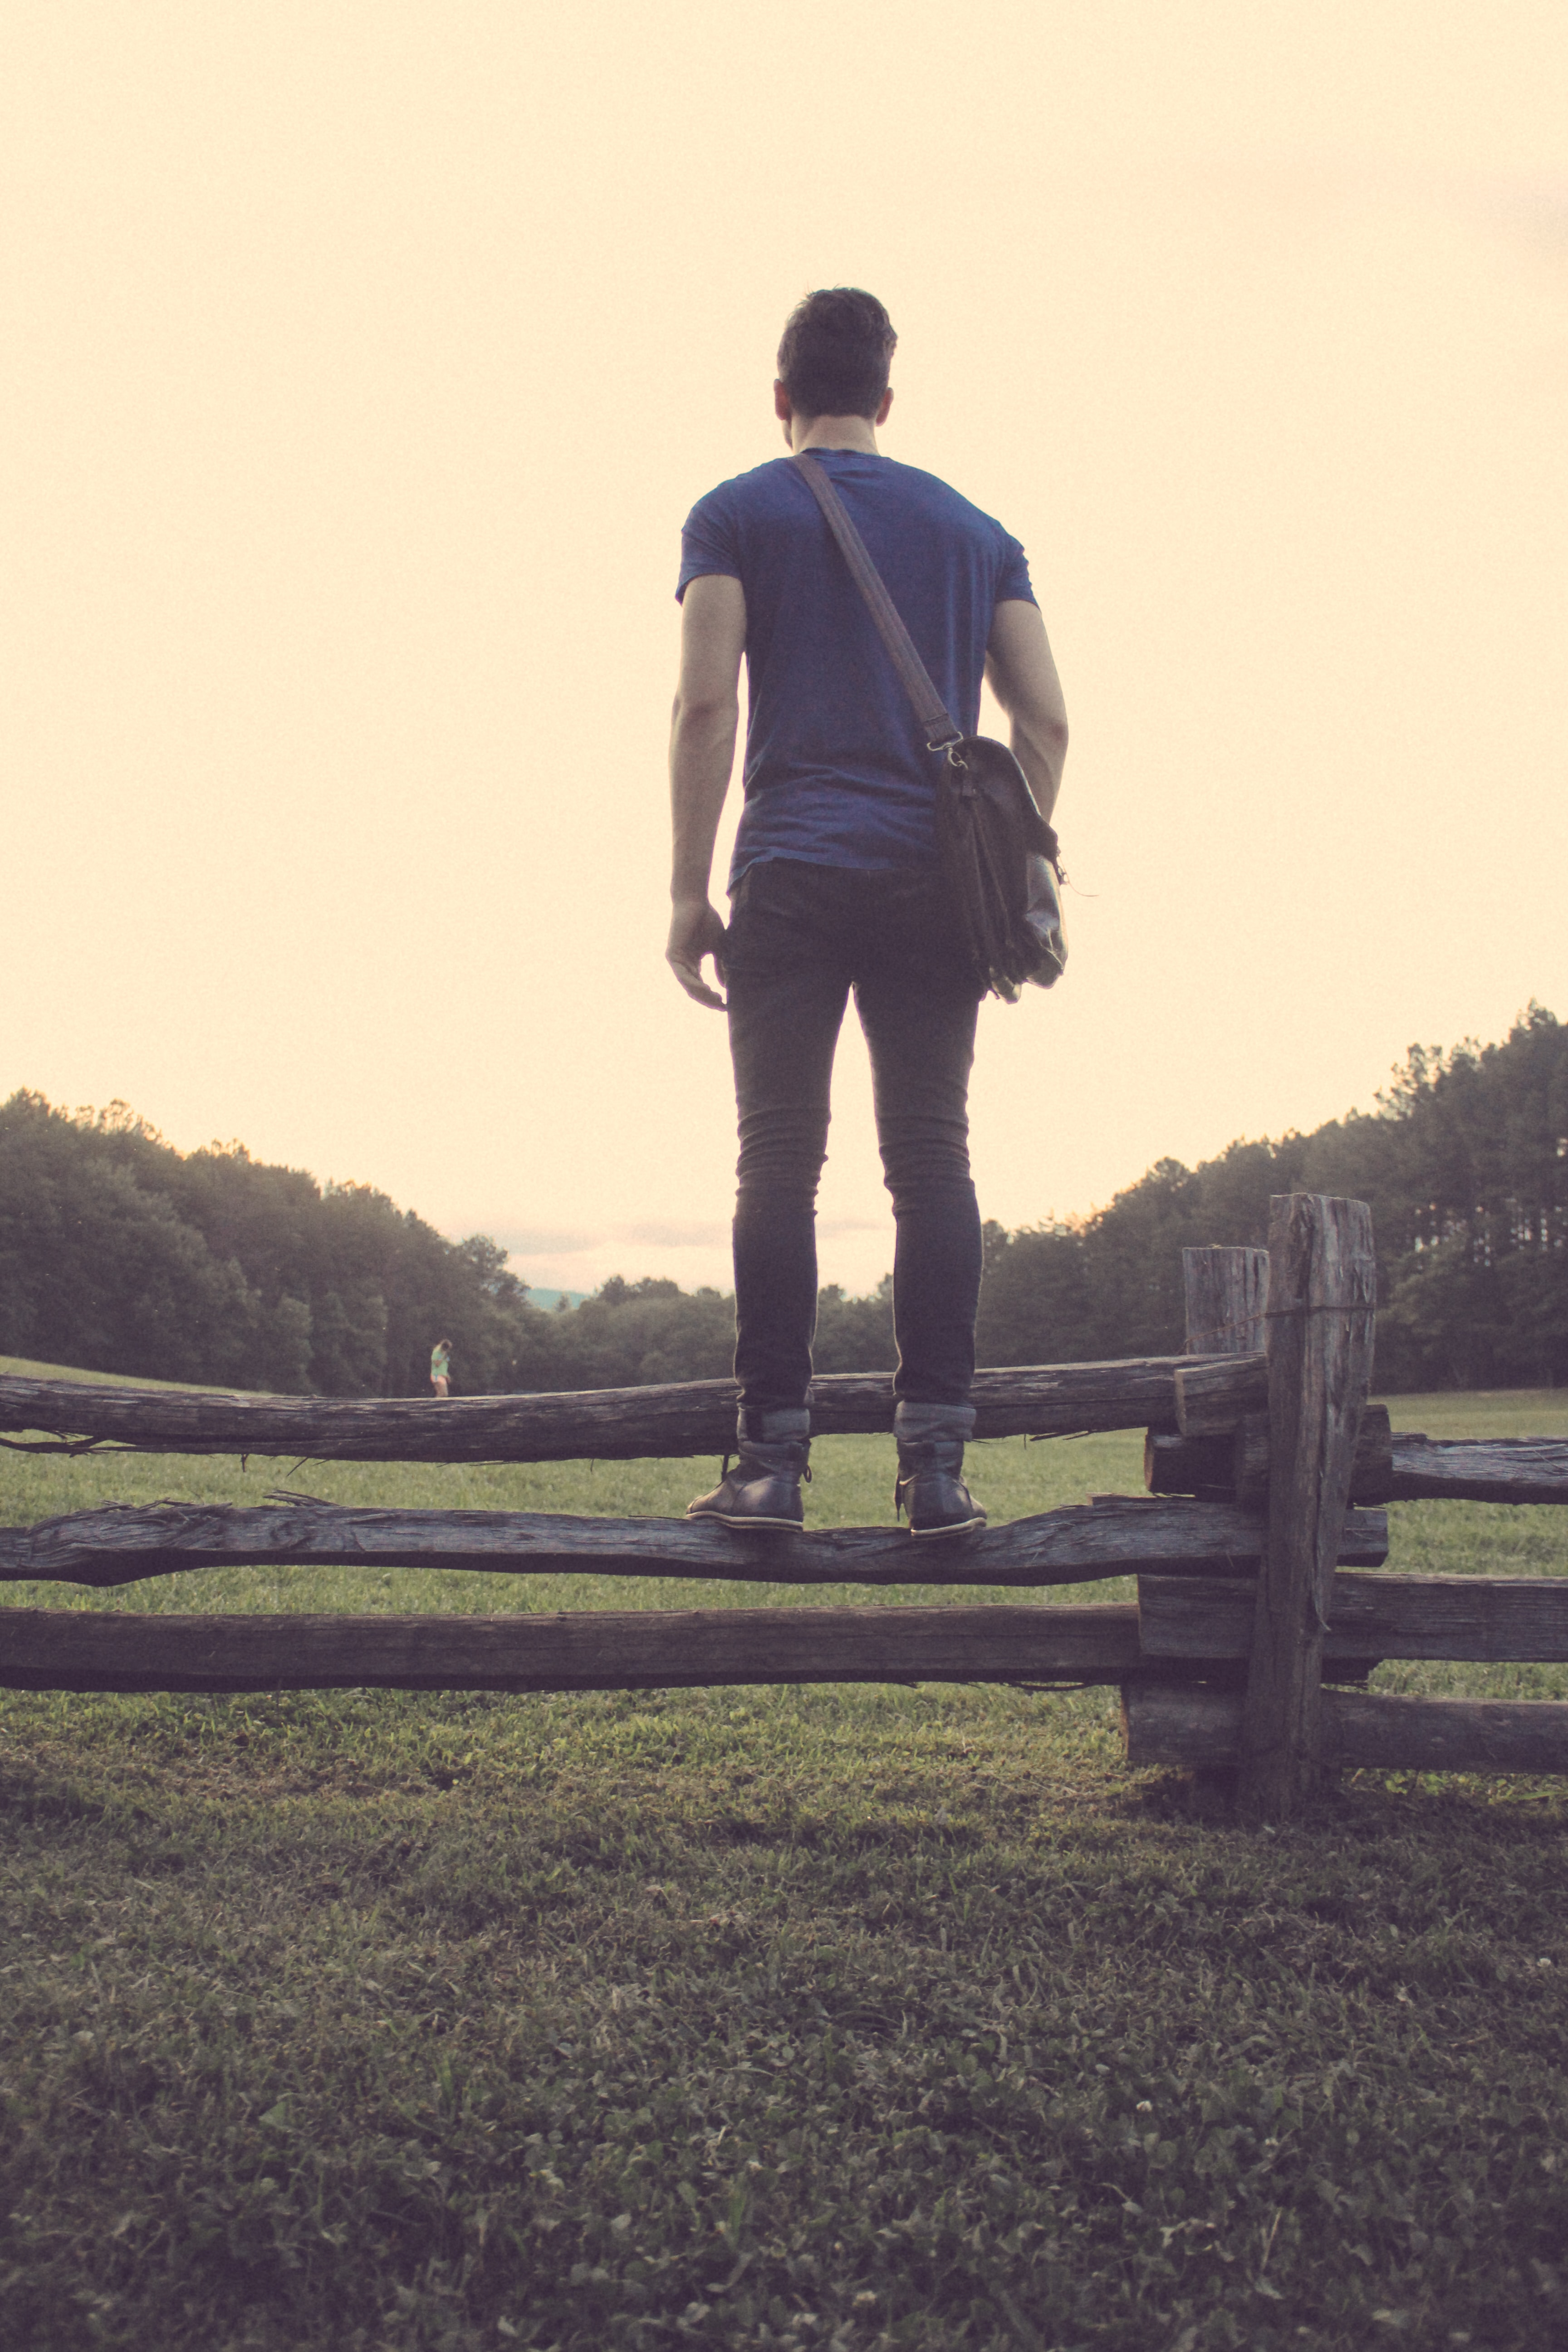 A person standing on a wooden fence, looking towards a meadow.